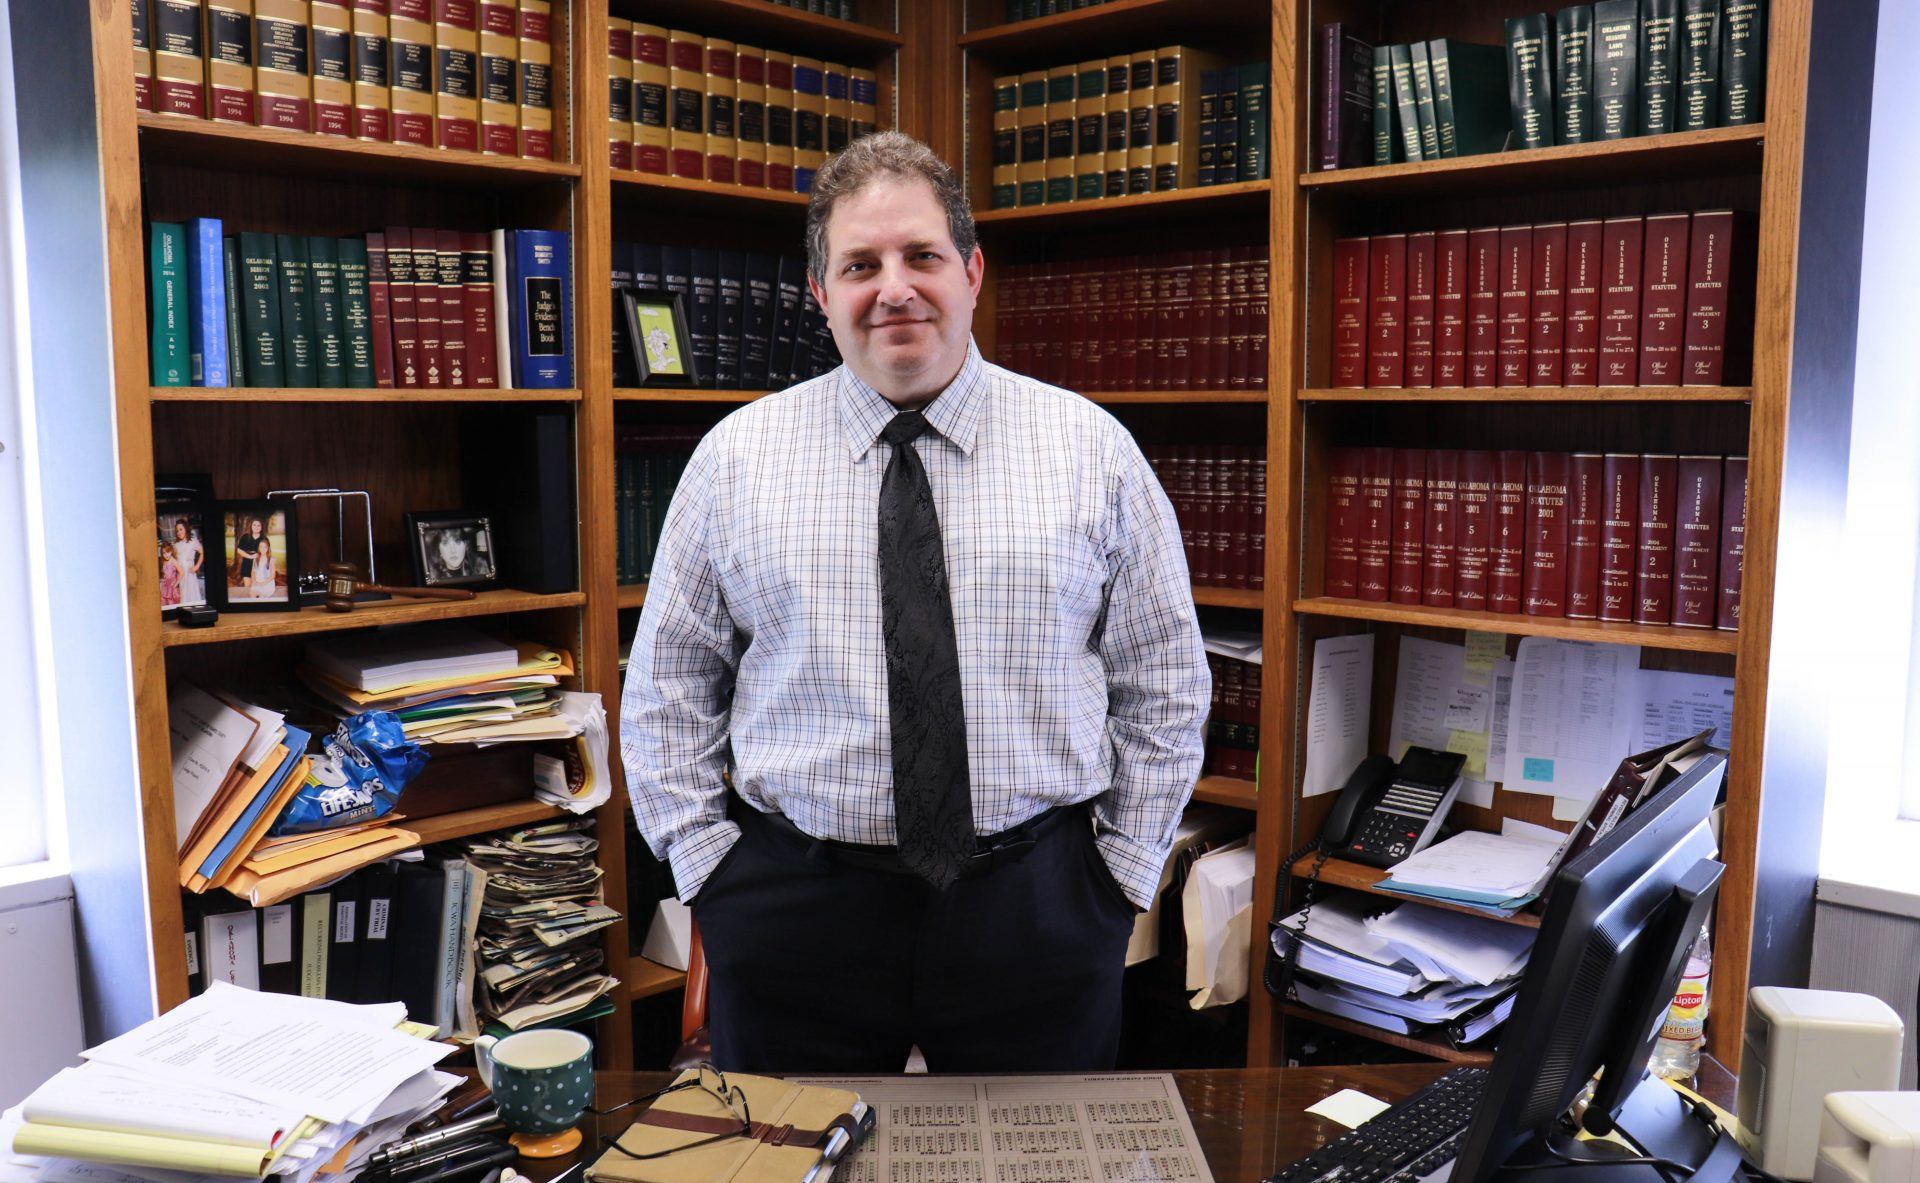 Judge Pickerill stands behind his desk in his courthouse office.